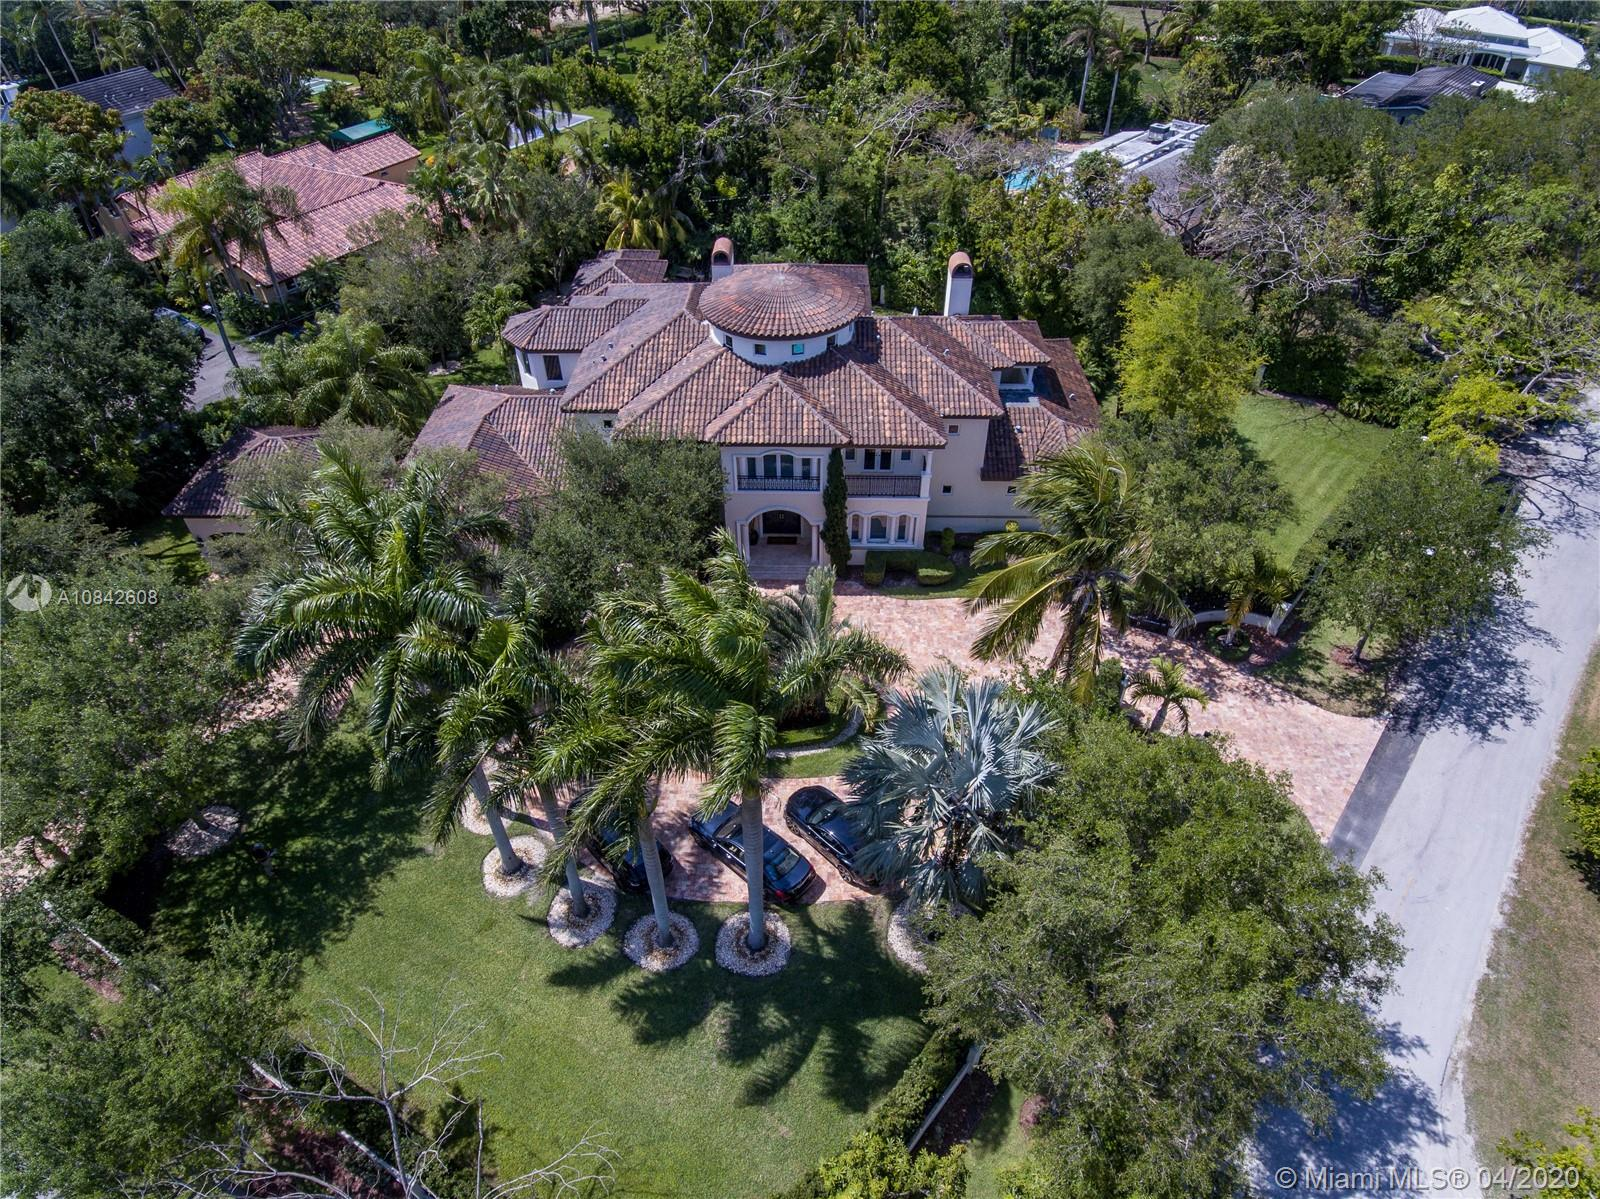 9750 SW 63rd Ct, Pinecrest, Florida 33156, 6 Bedrooms Bedrooms, ,8 BathroomsBathrooms,Residential,For Sale,9750 SW 63rd Ct,A10842608